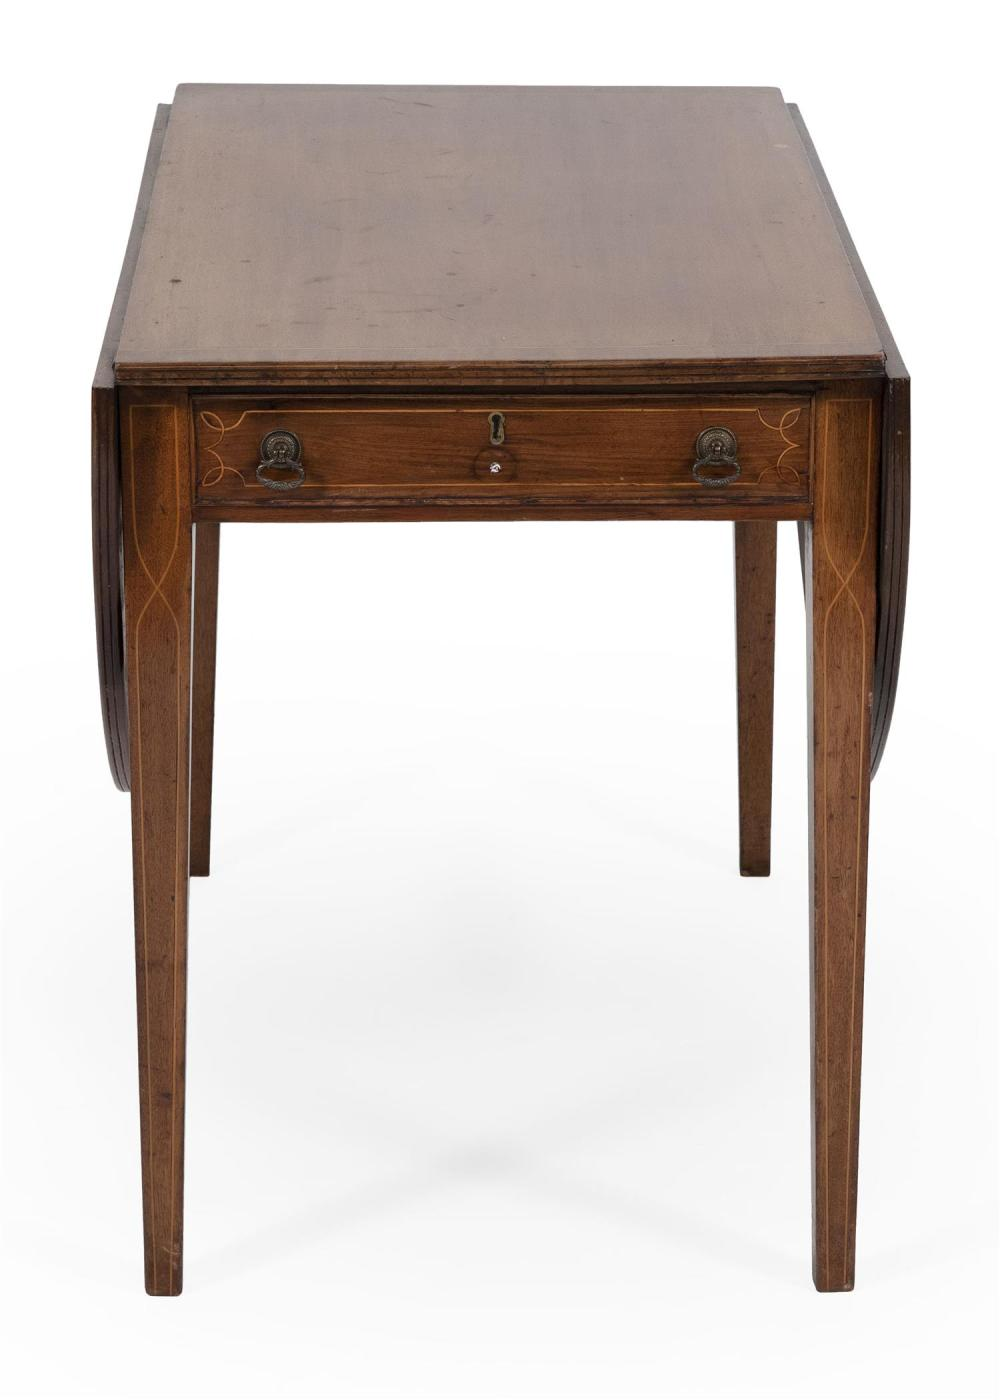 ONE-DRAWER PEMBROKE TABLE Hardwood, made up from new and old parts. Height 28.5